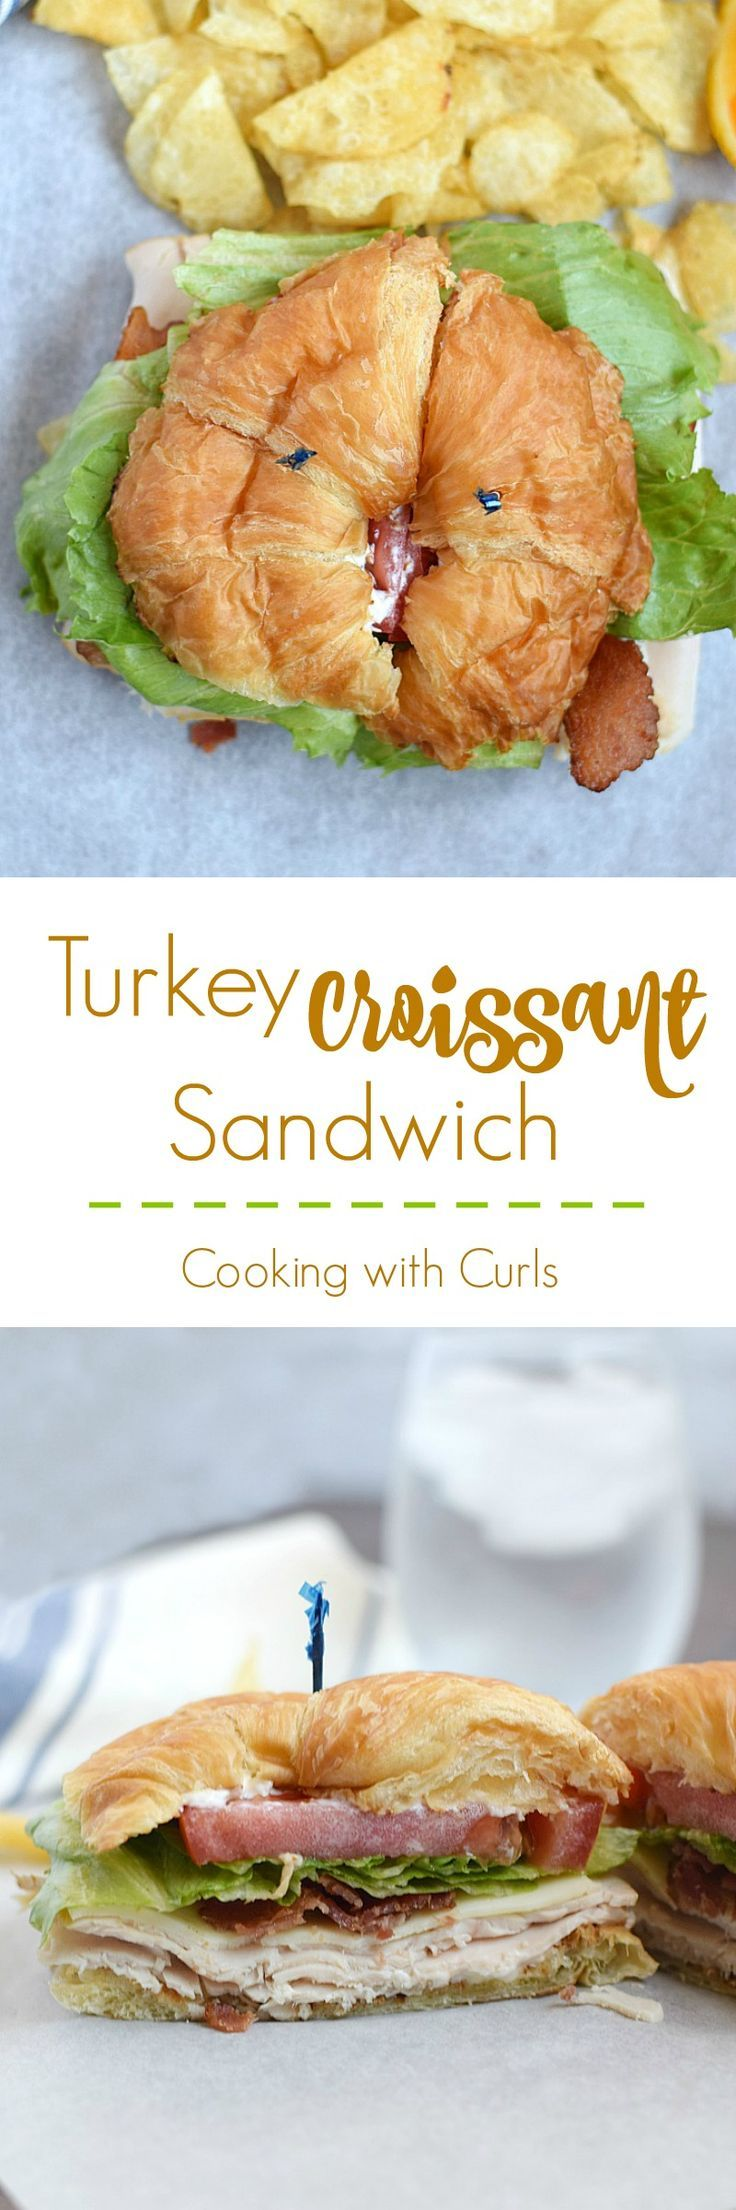 A delicious Turkey Croissant Sandwich is perfect way to use up leftover turkey, or use deli  meat for a quick meal